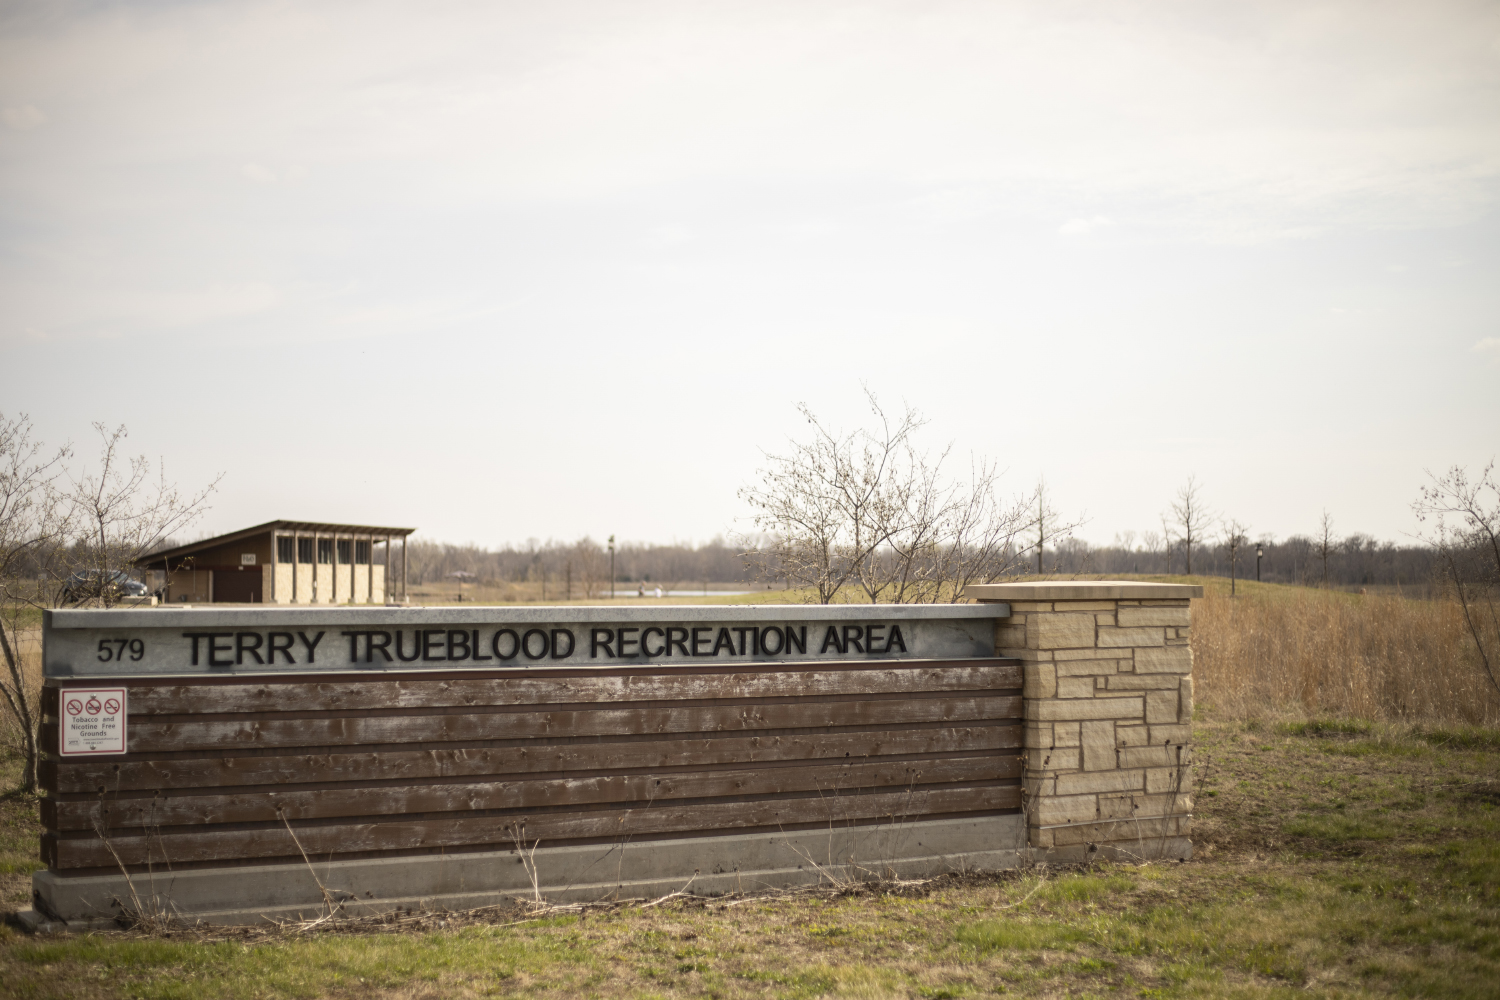 The entrance to Terry Trueblood Recreation Area is seen on Tuesday, April 17, 2019. (Ryan Adams/The Daily Iowan)